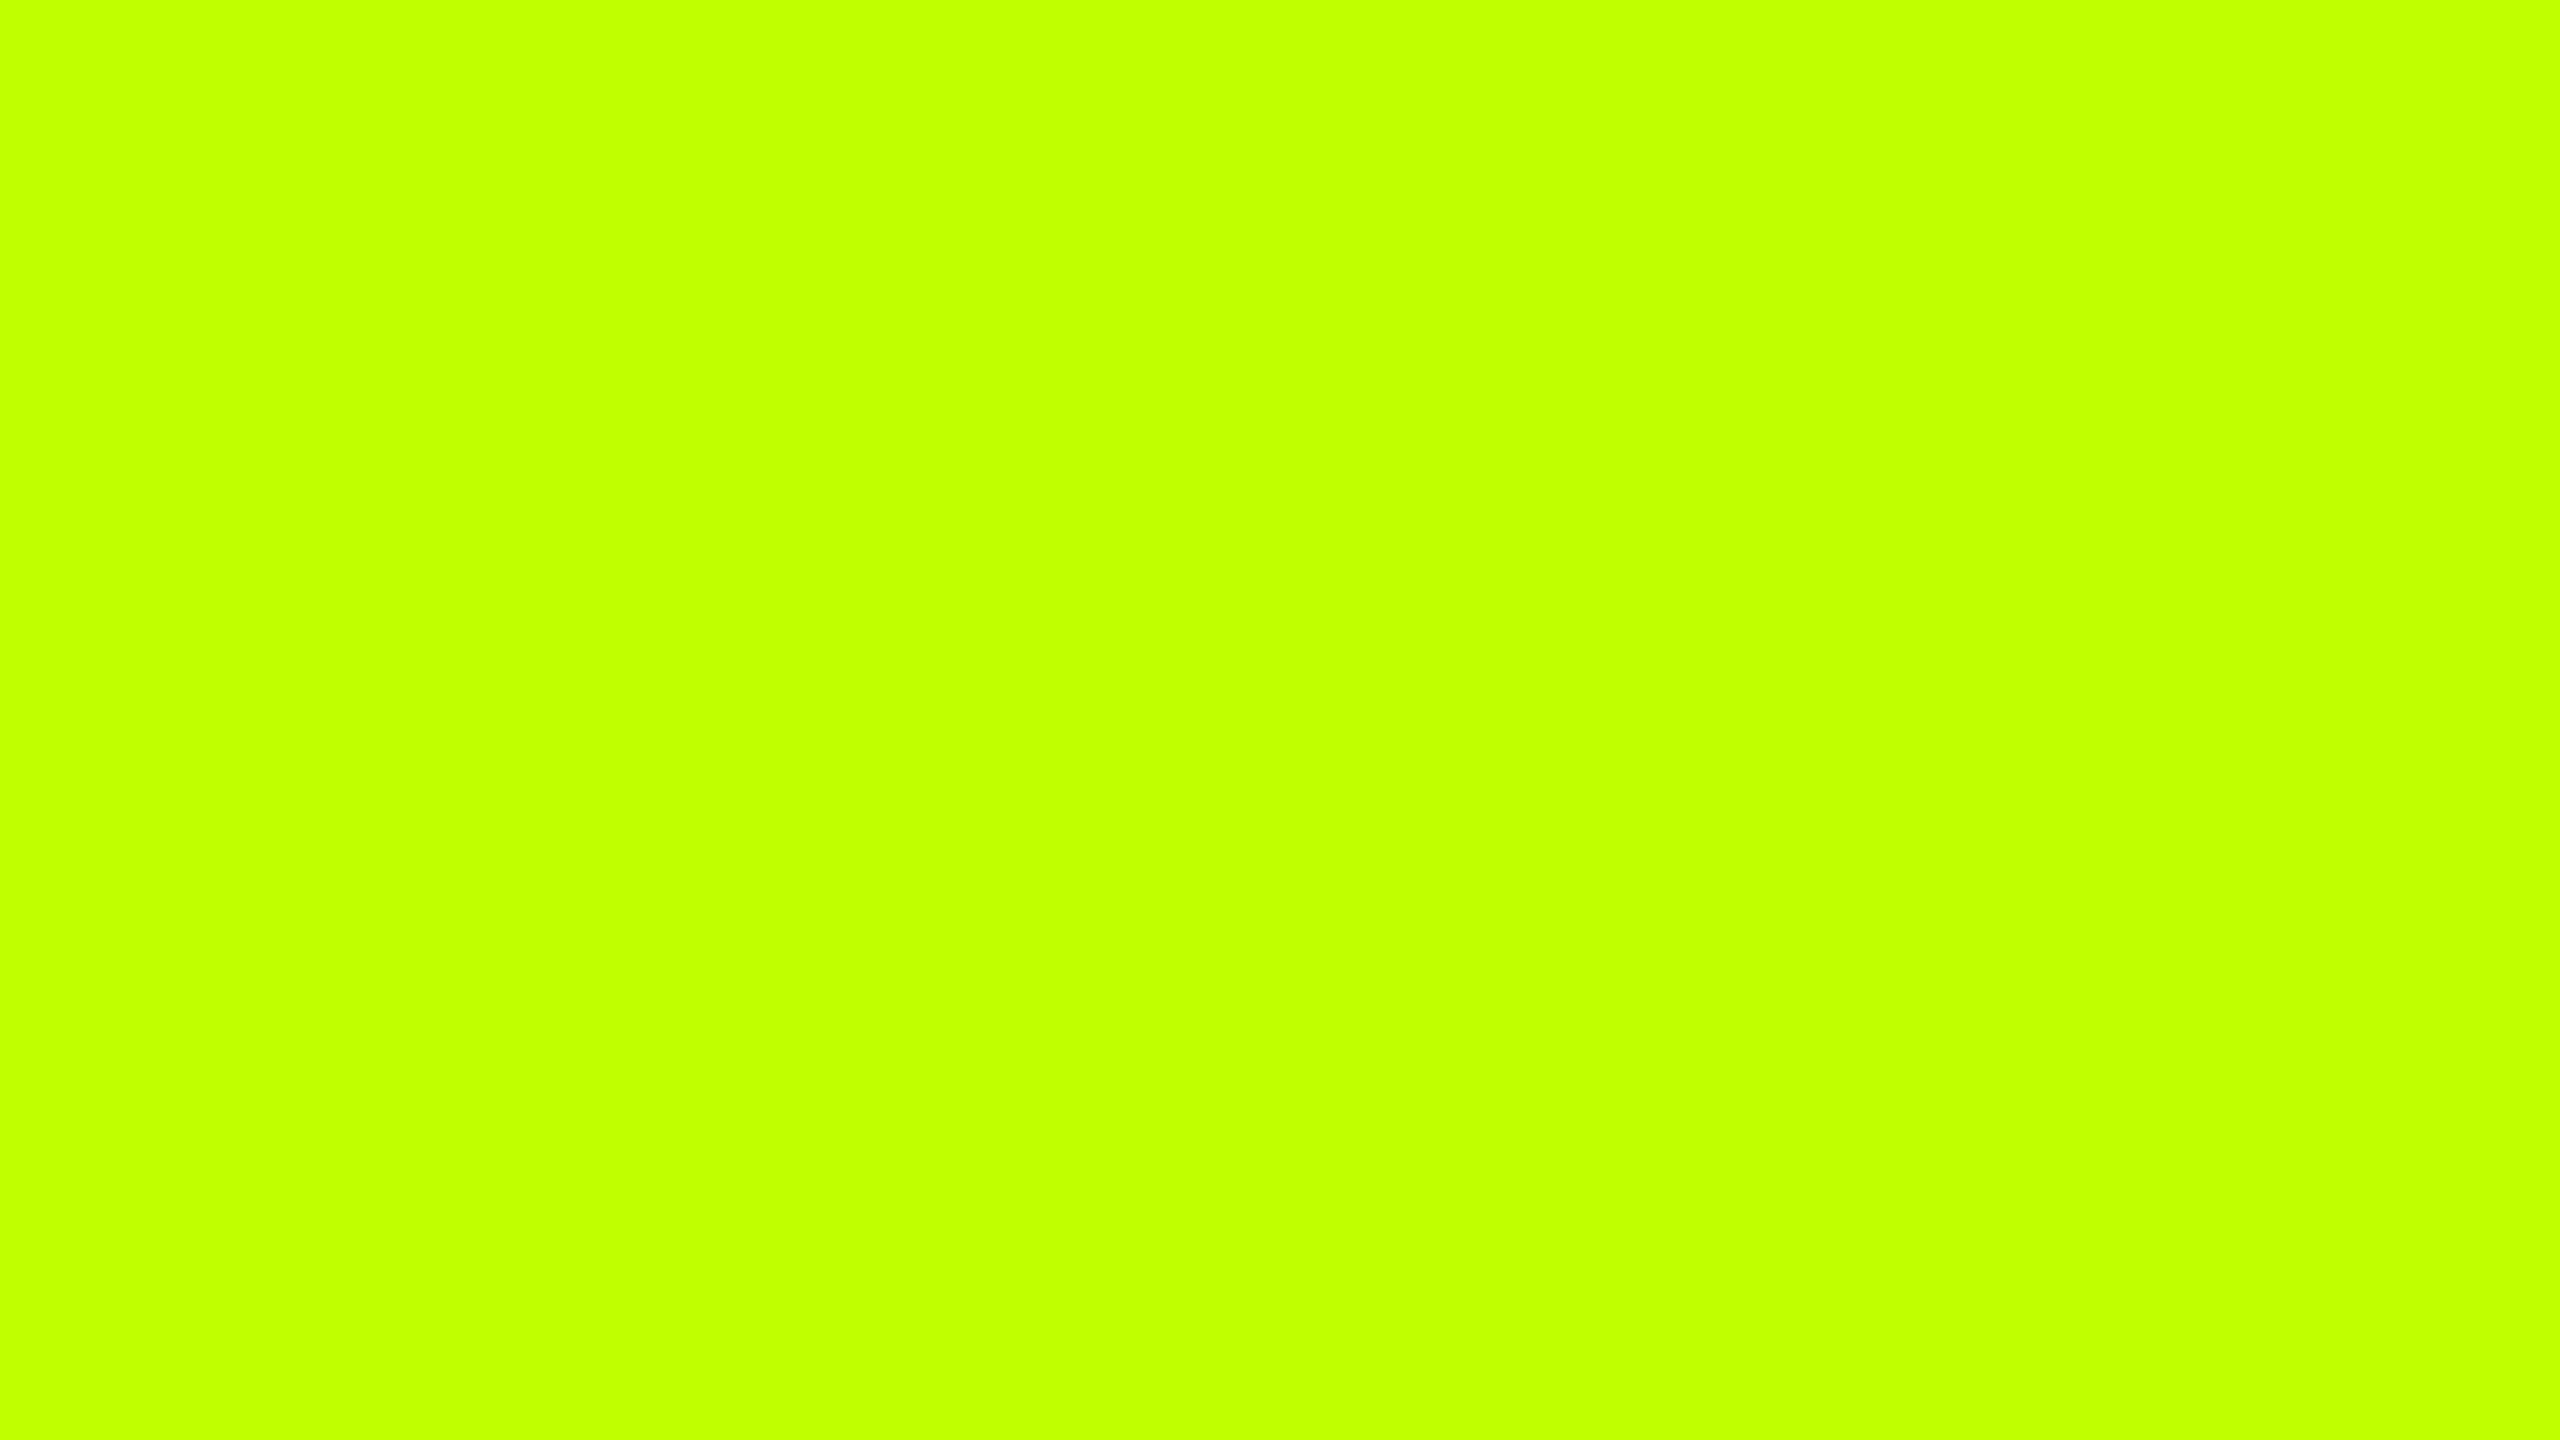 this Neon Green Desktop Wallpaper is easy Just save the wallpaper 2560x1440